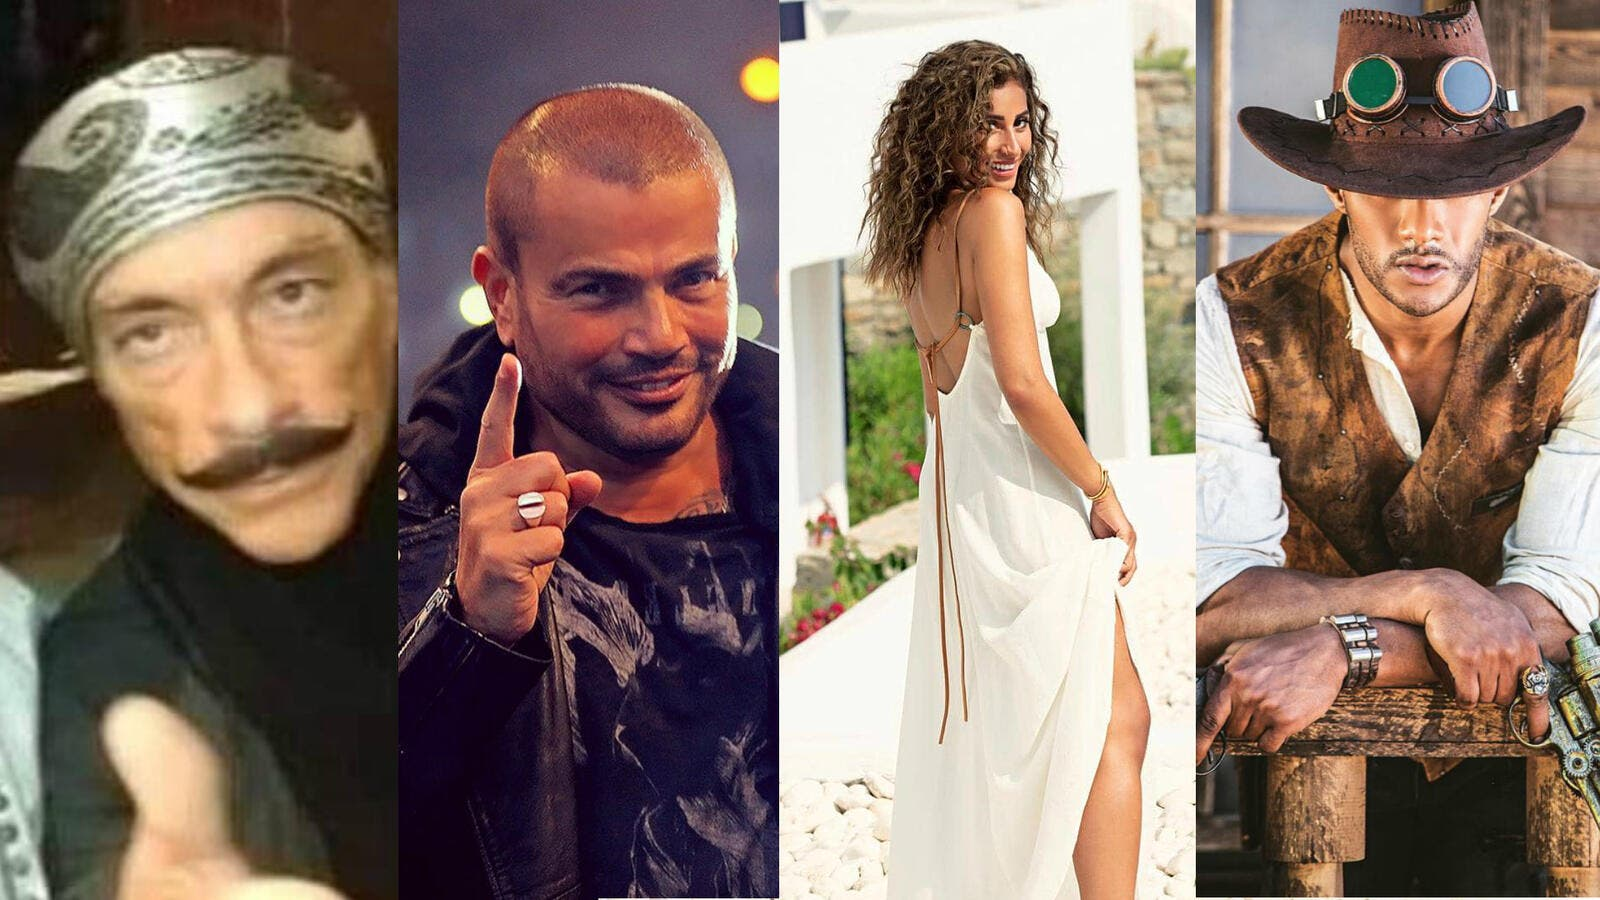 In Ramadan 2019 Ads Dina Sherbini and Amr Diab will appear for the first time on screen together, and universal star Van Dam is turning into a 'Saidi' alongside Mohammed Ramadan.